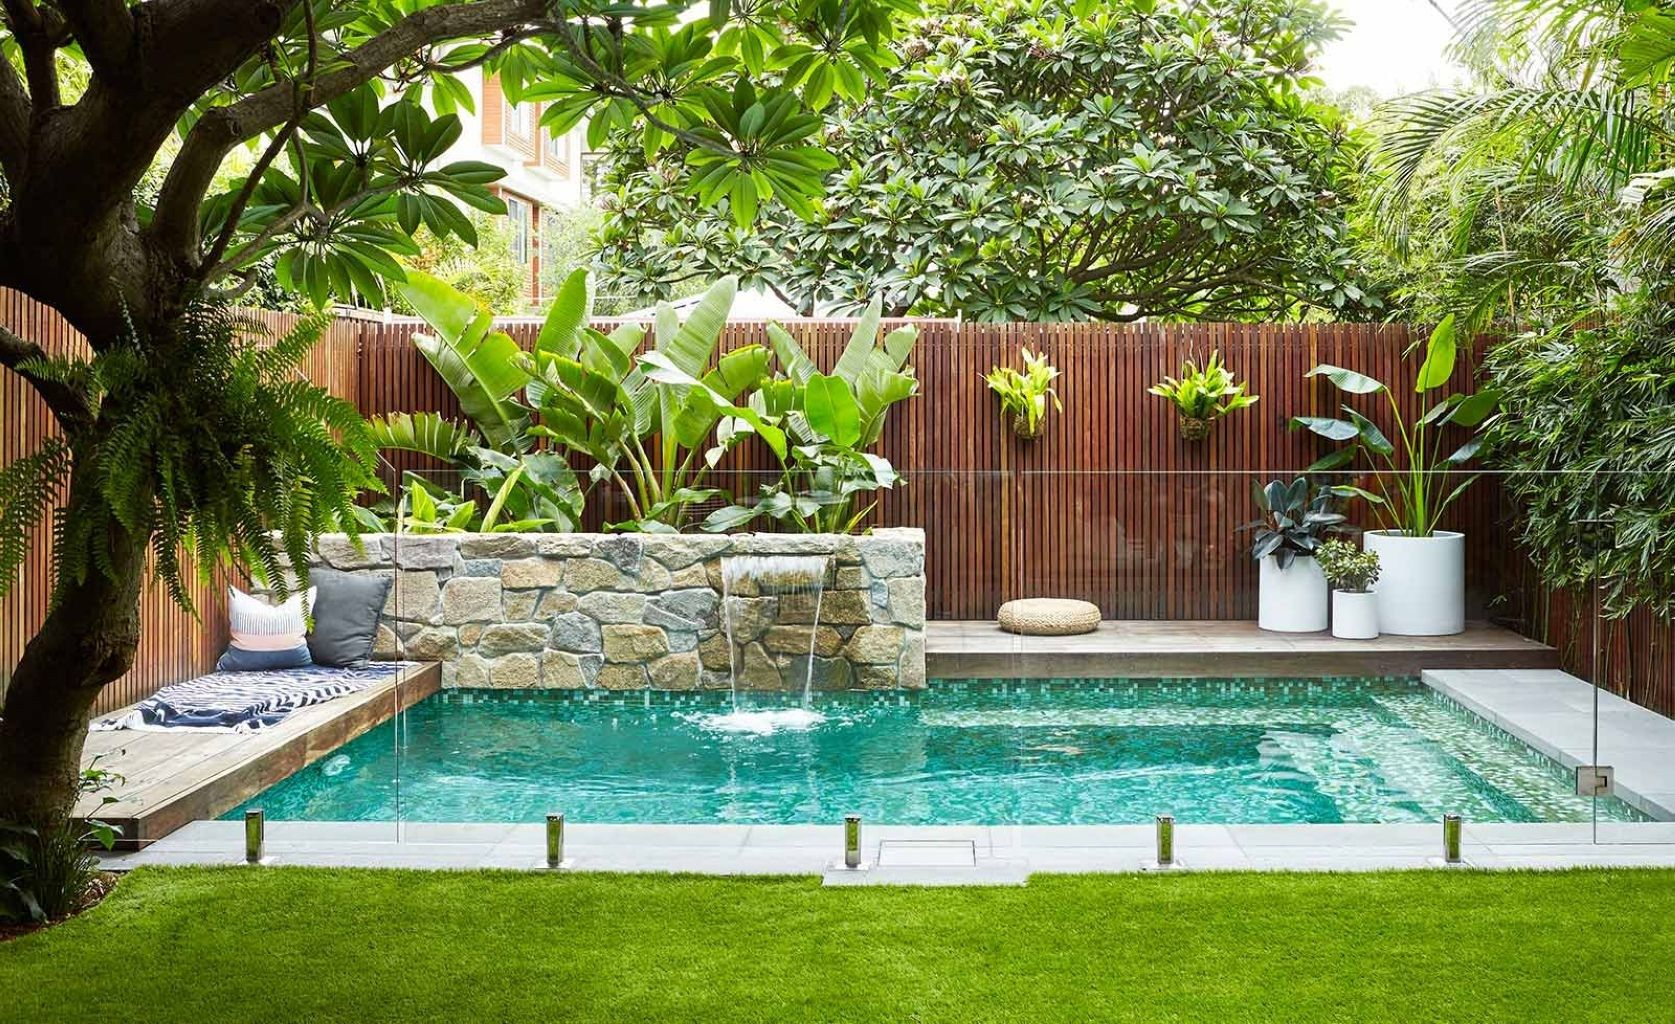 Best Small Pool Ideas For A Small Backyard 16 - TOPARCHITECTURE